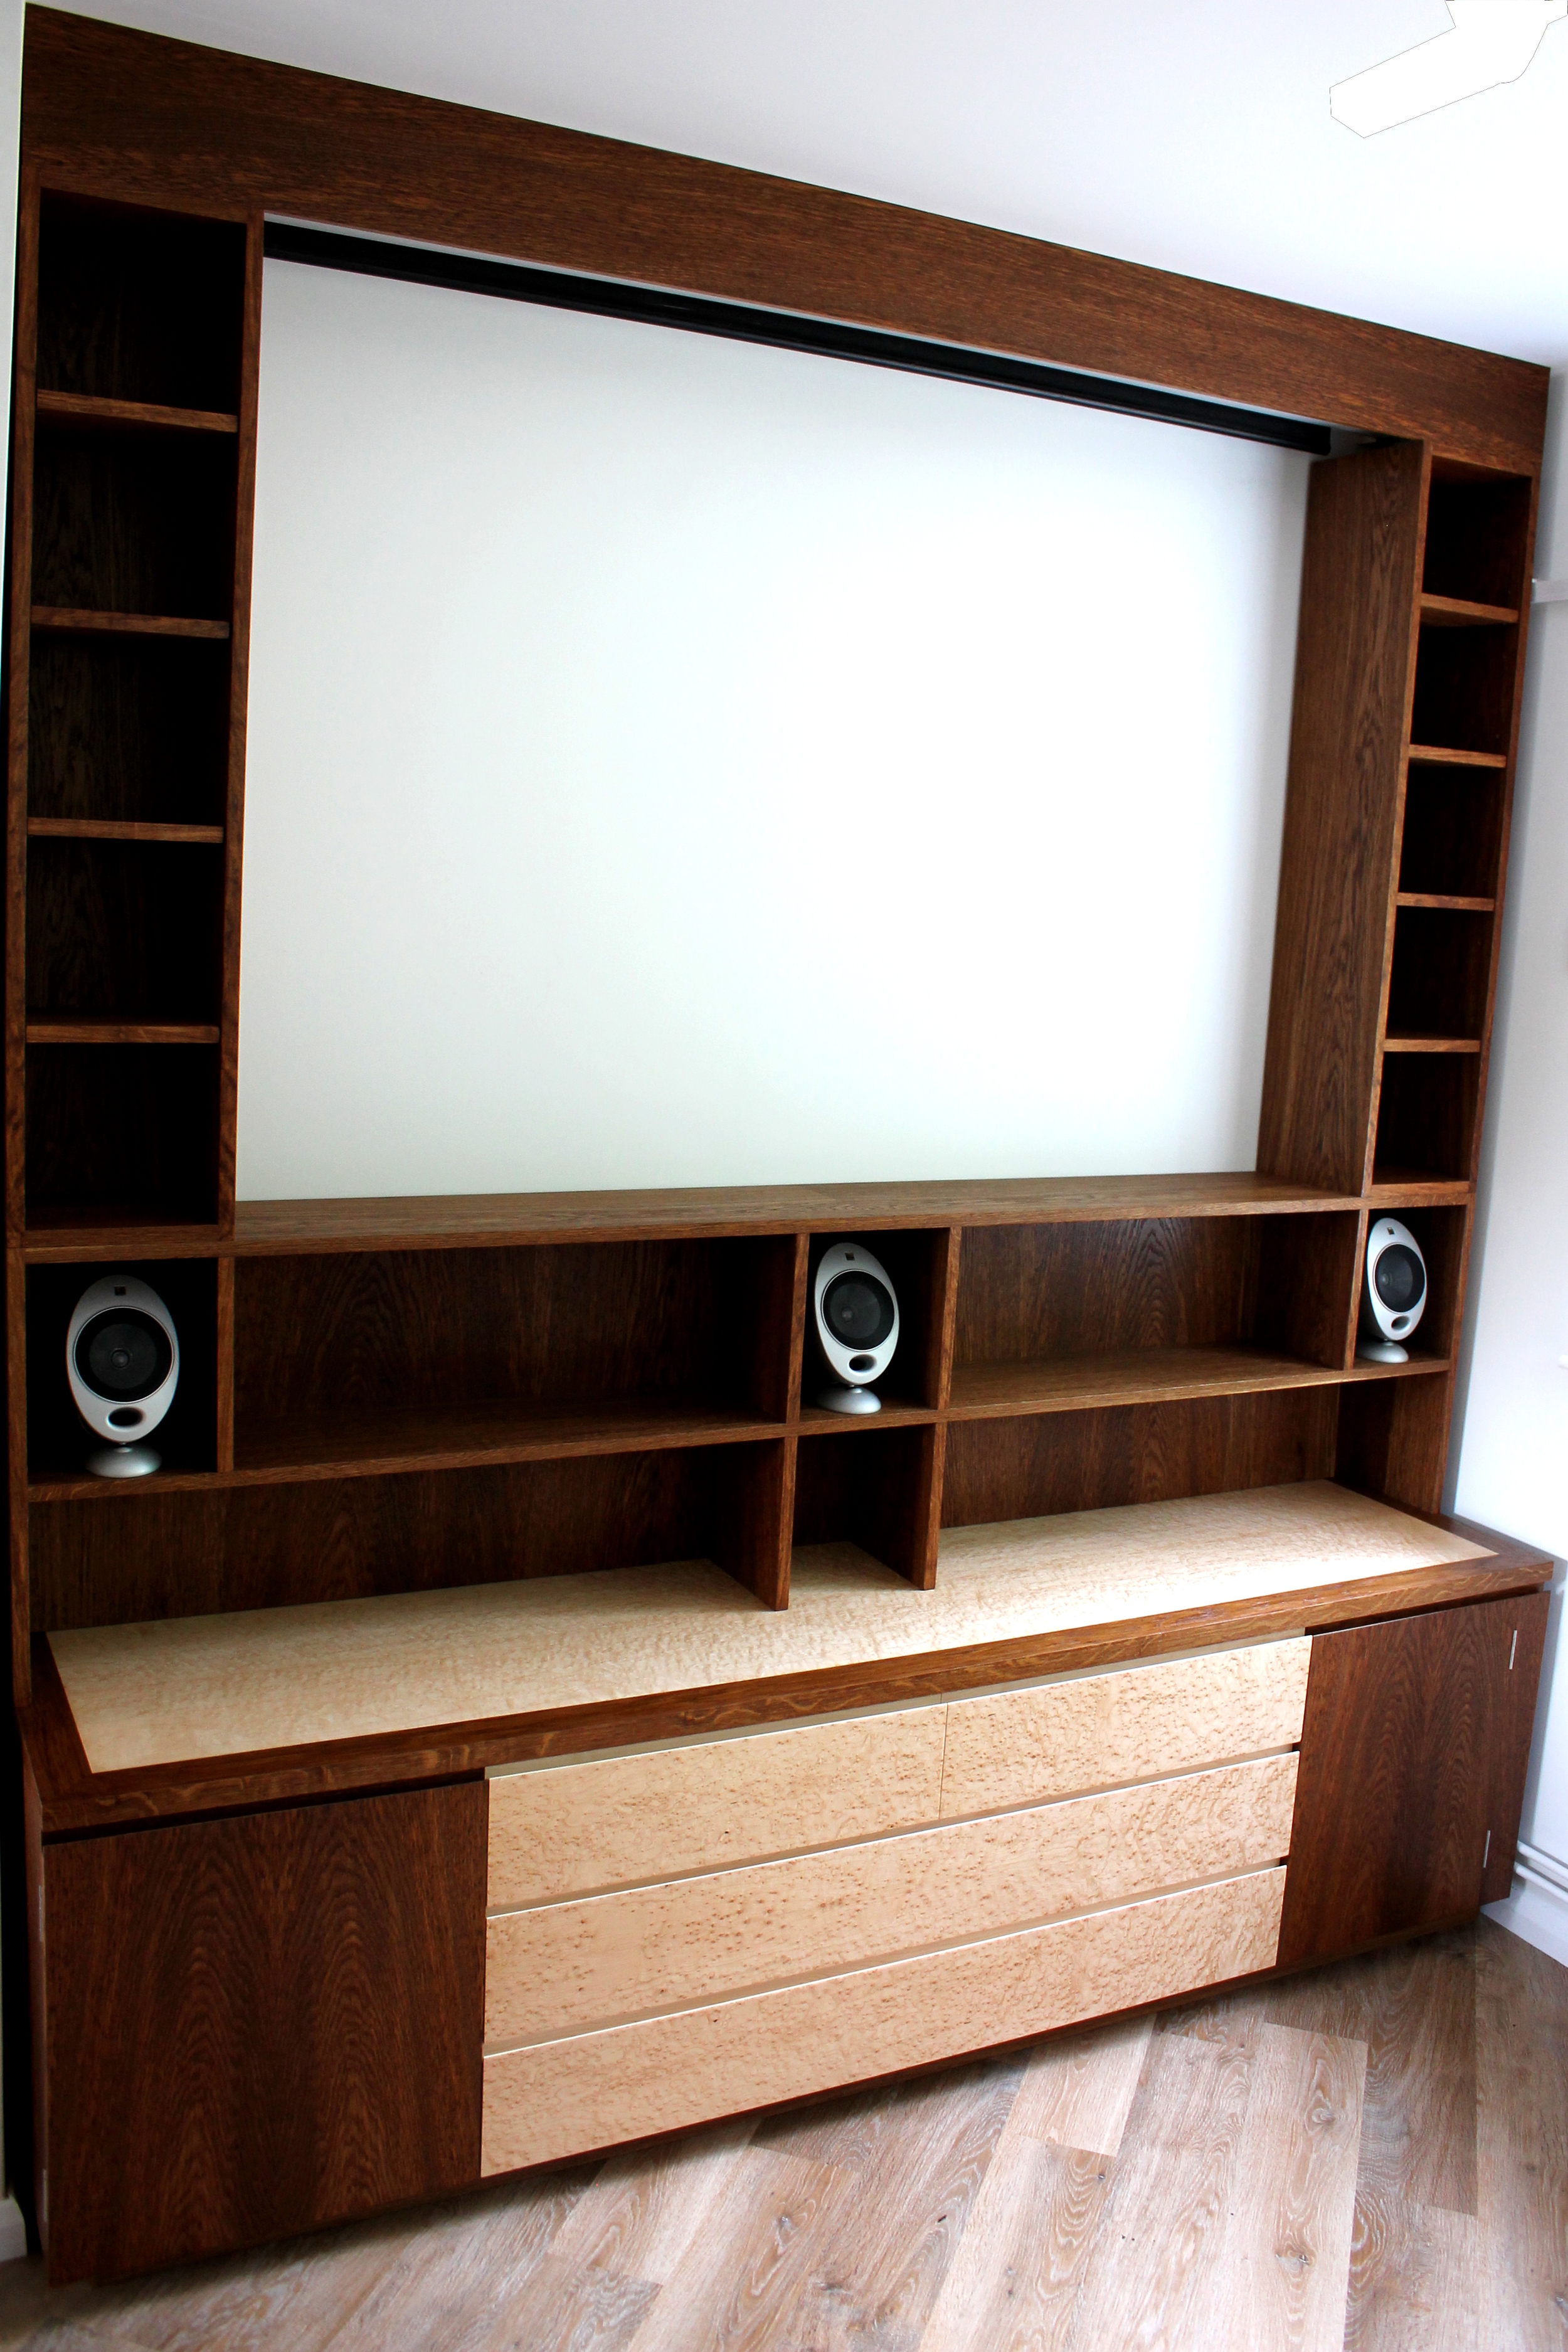 The Vatch - Media & projector unit